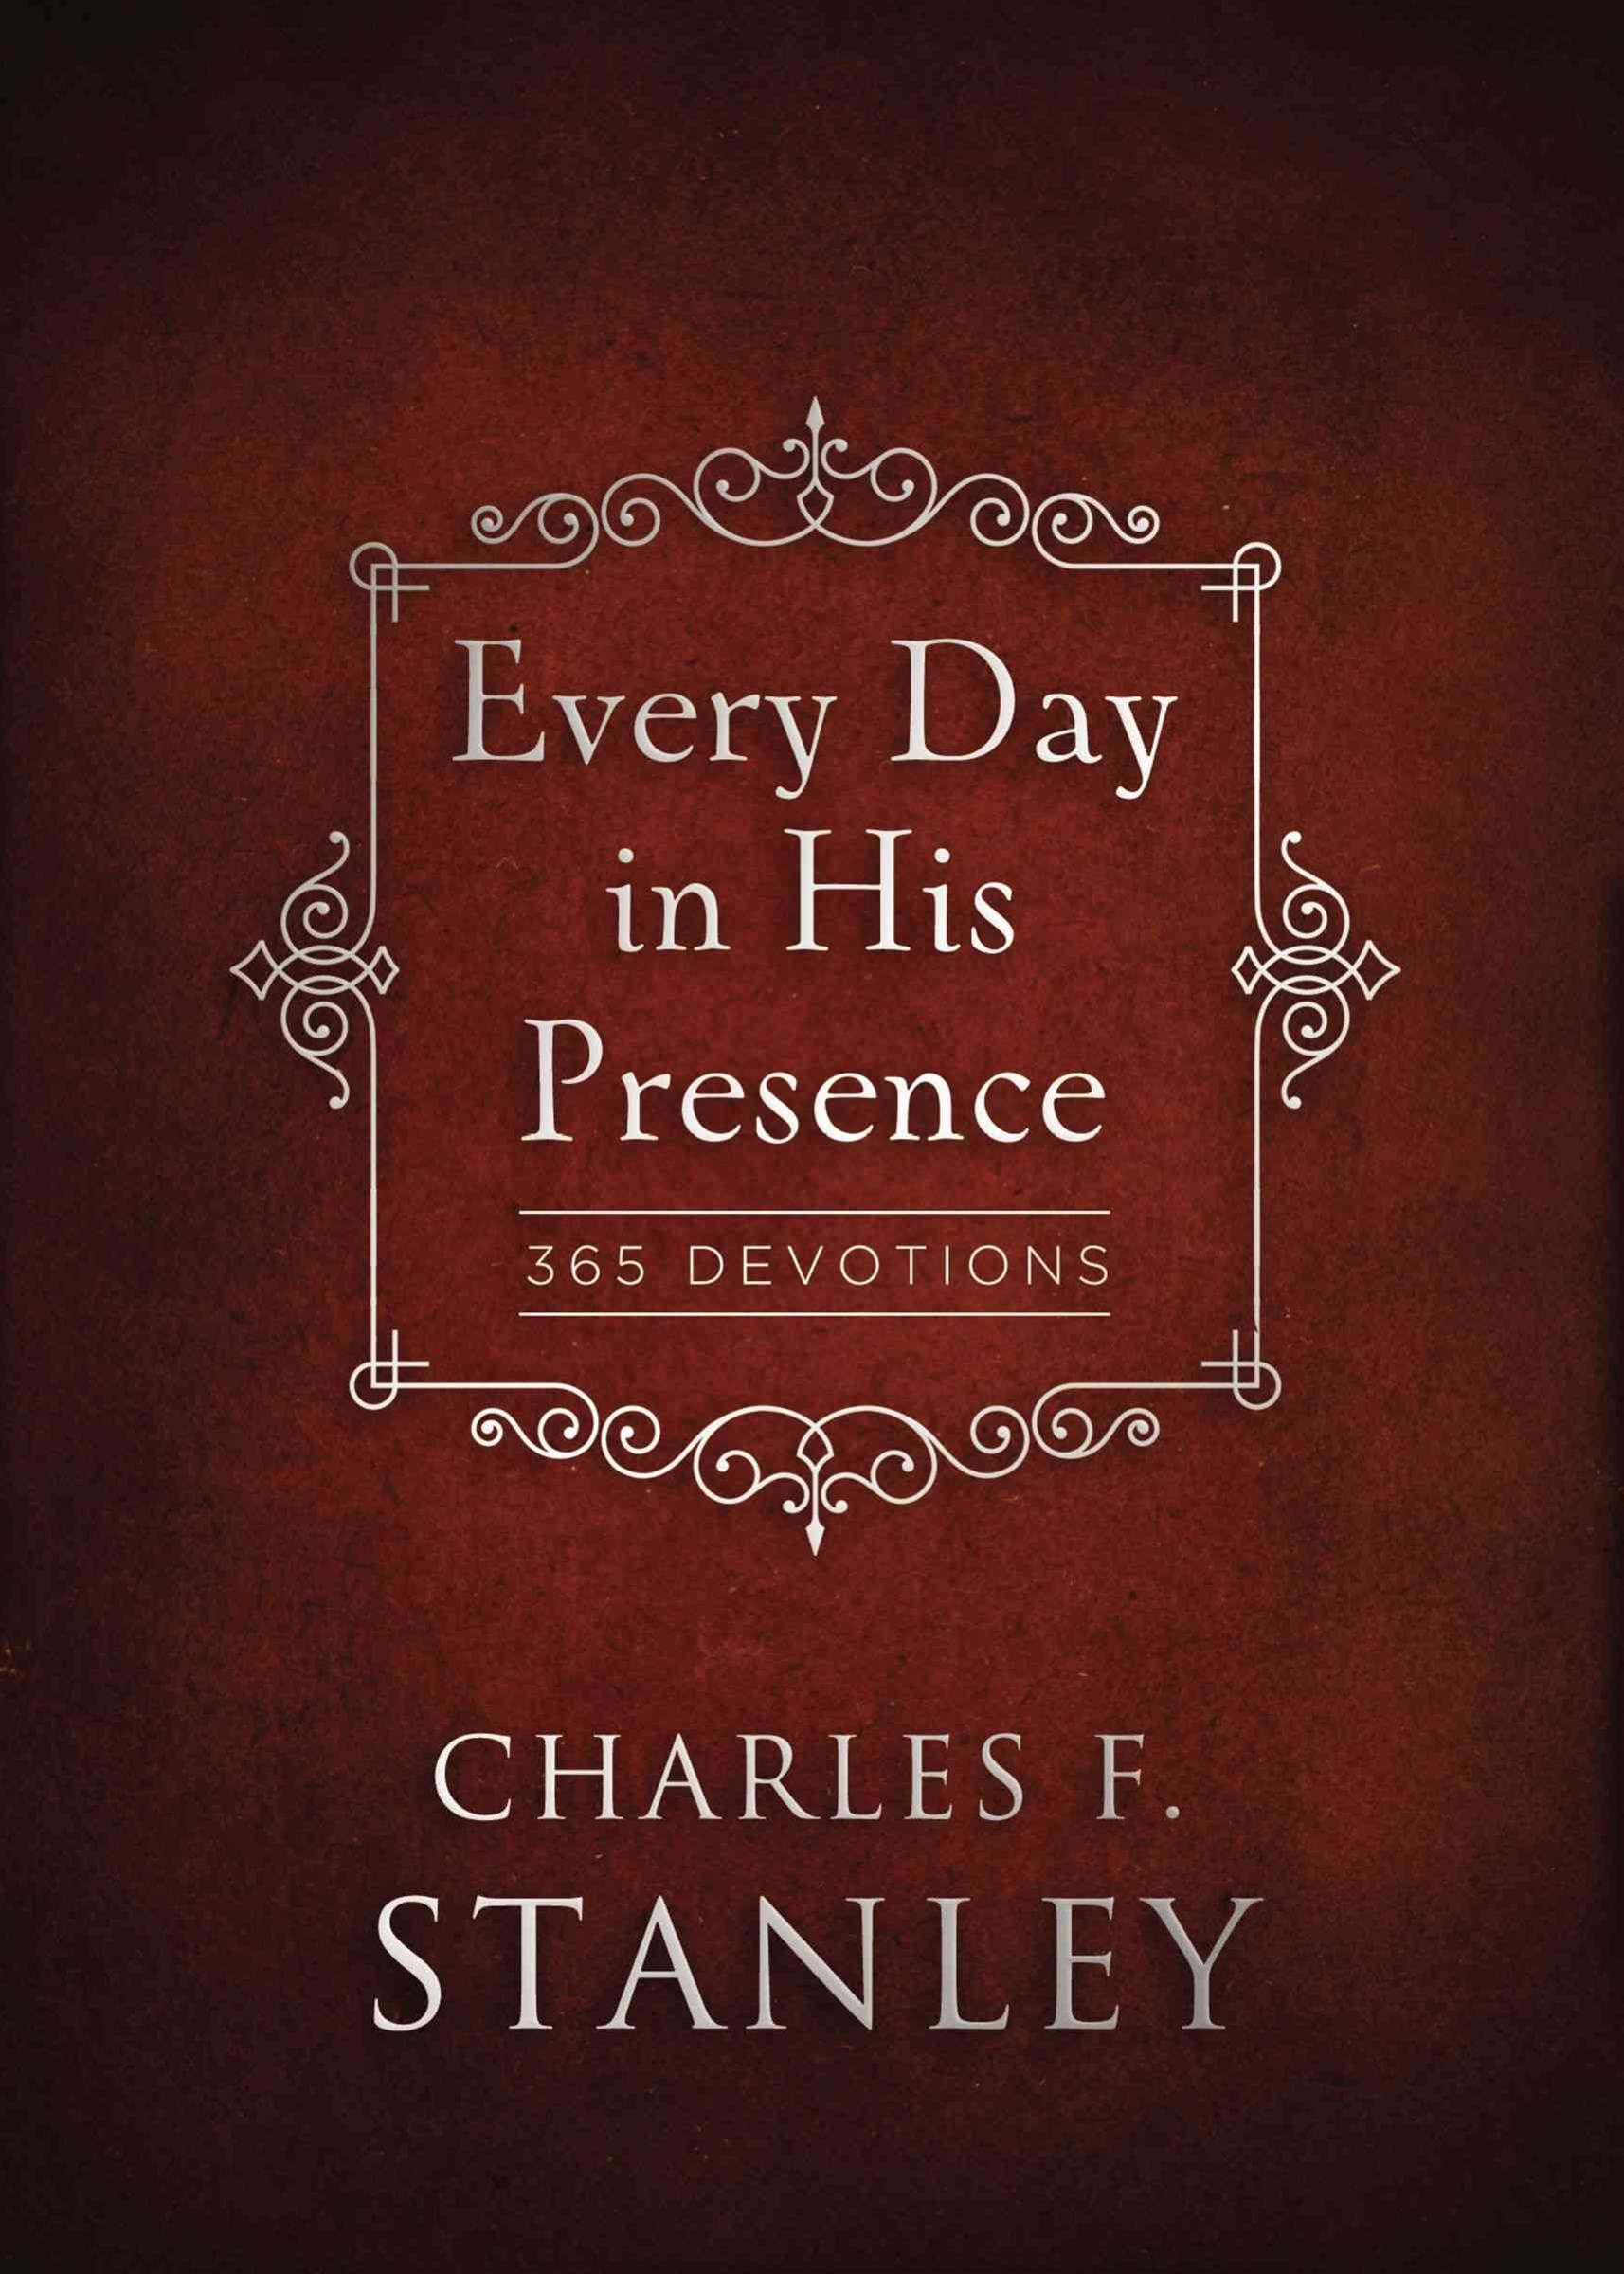 Every Day in His Presence